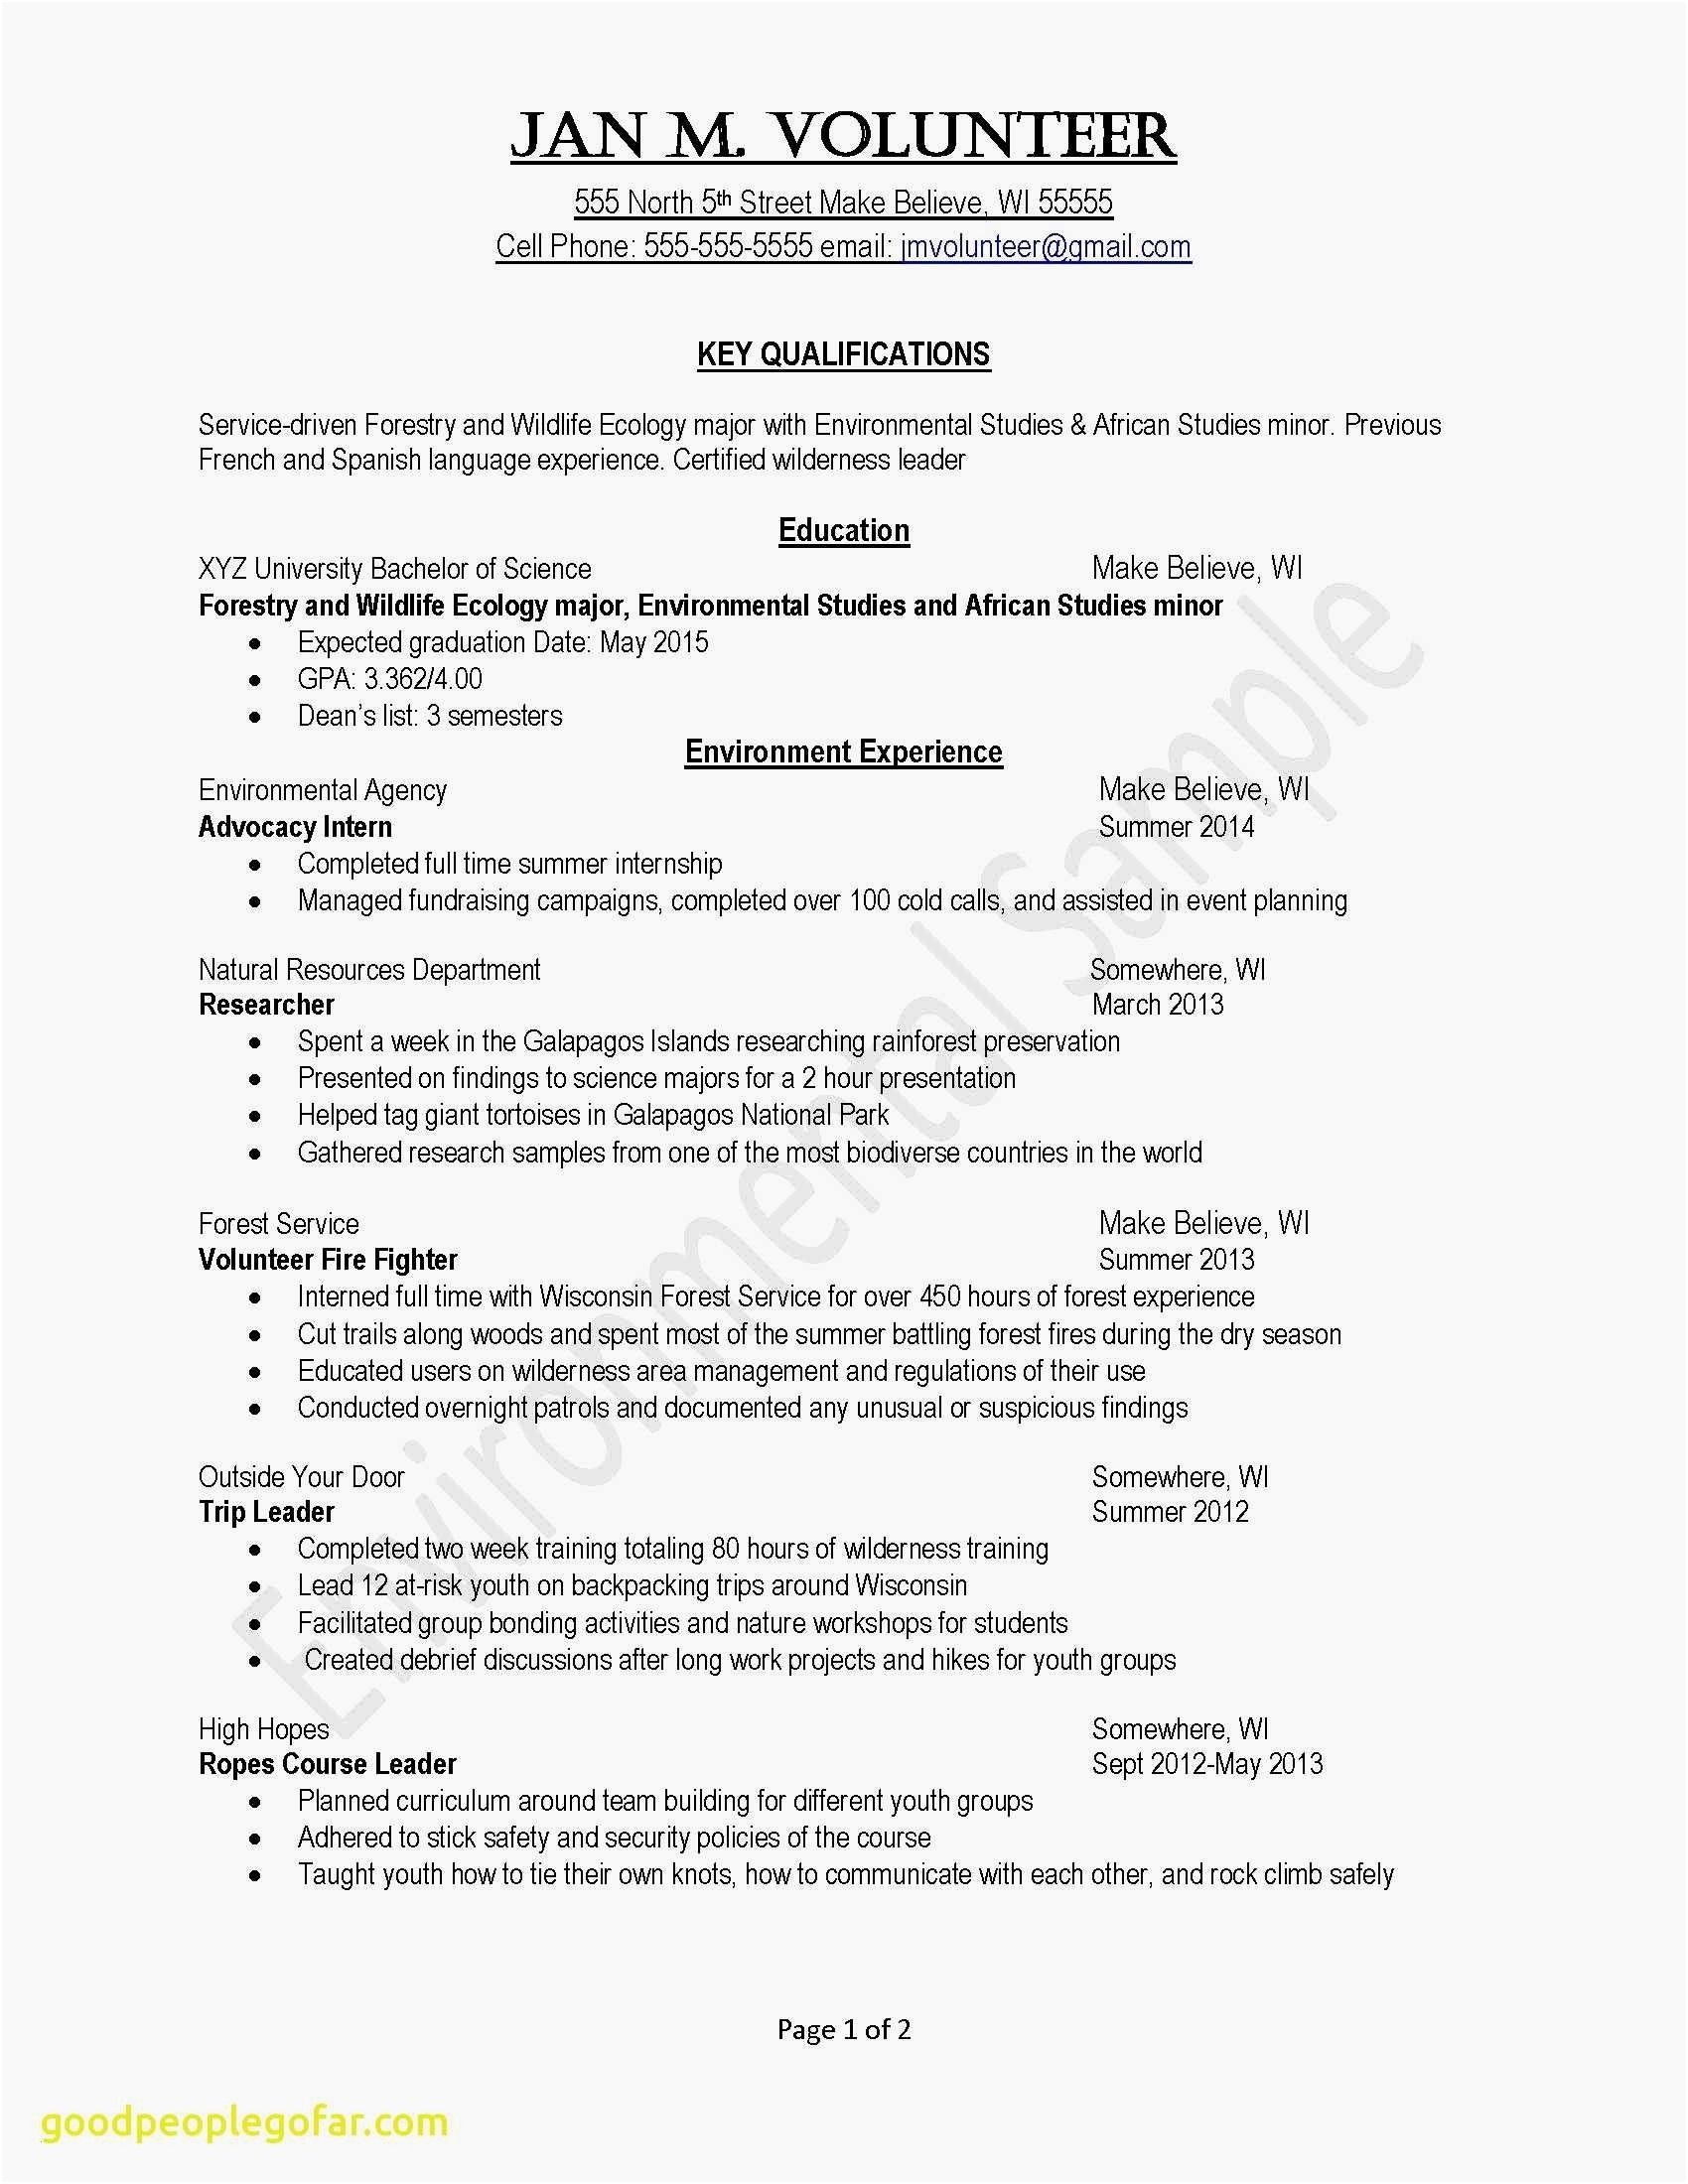 firefighter job description for resume Collection-Graphic Designer Job Description Resume Fresh Lovely Examples Resumes Ecologist Resume 0d Graphic Design Resumes 17-t